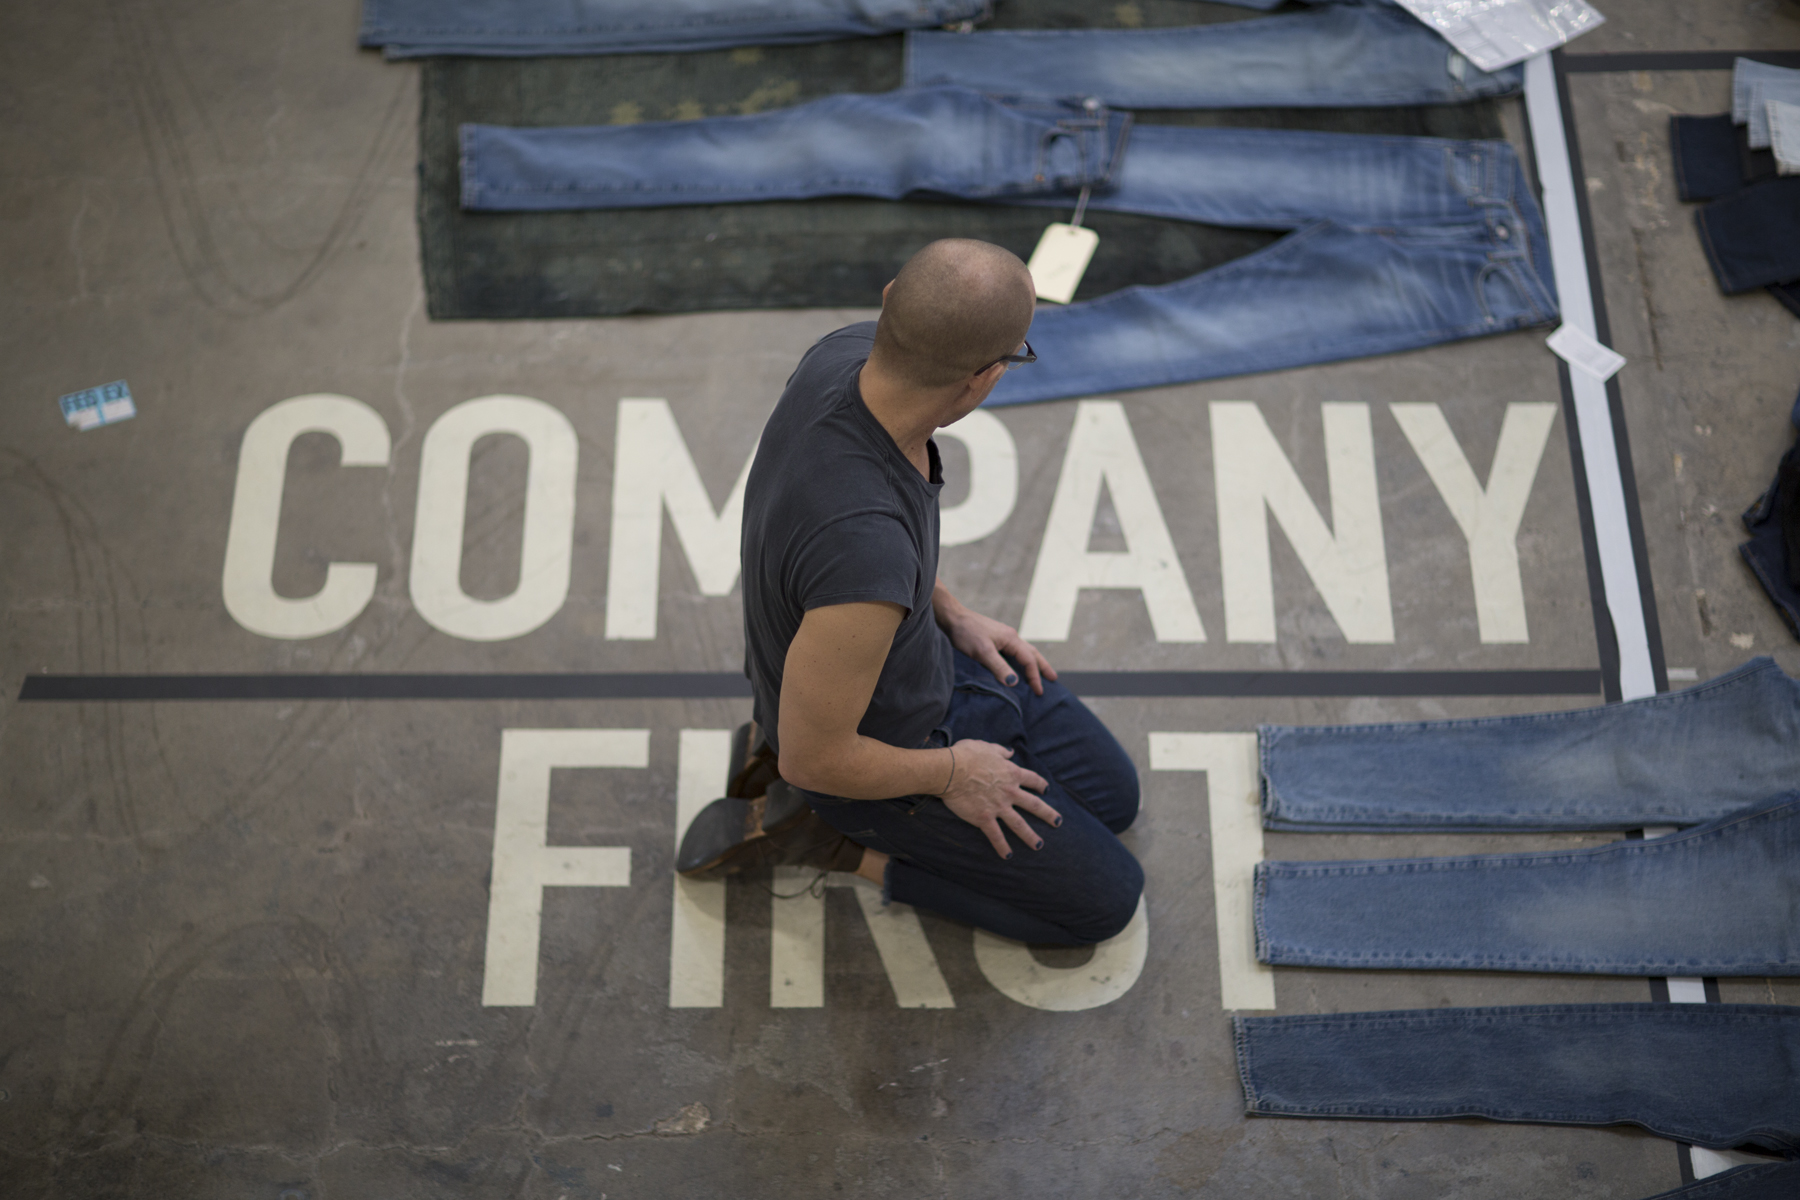 Bart Sights, VP of technical innovation at Levi Strauss, inspects jeans on the floor of his Eureka Innovation Lab in San Francisco